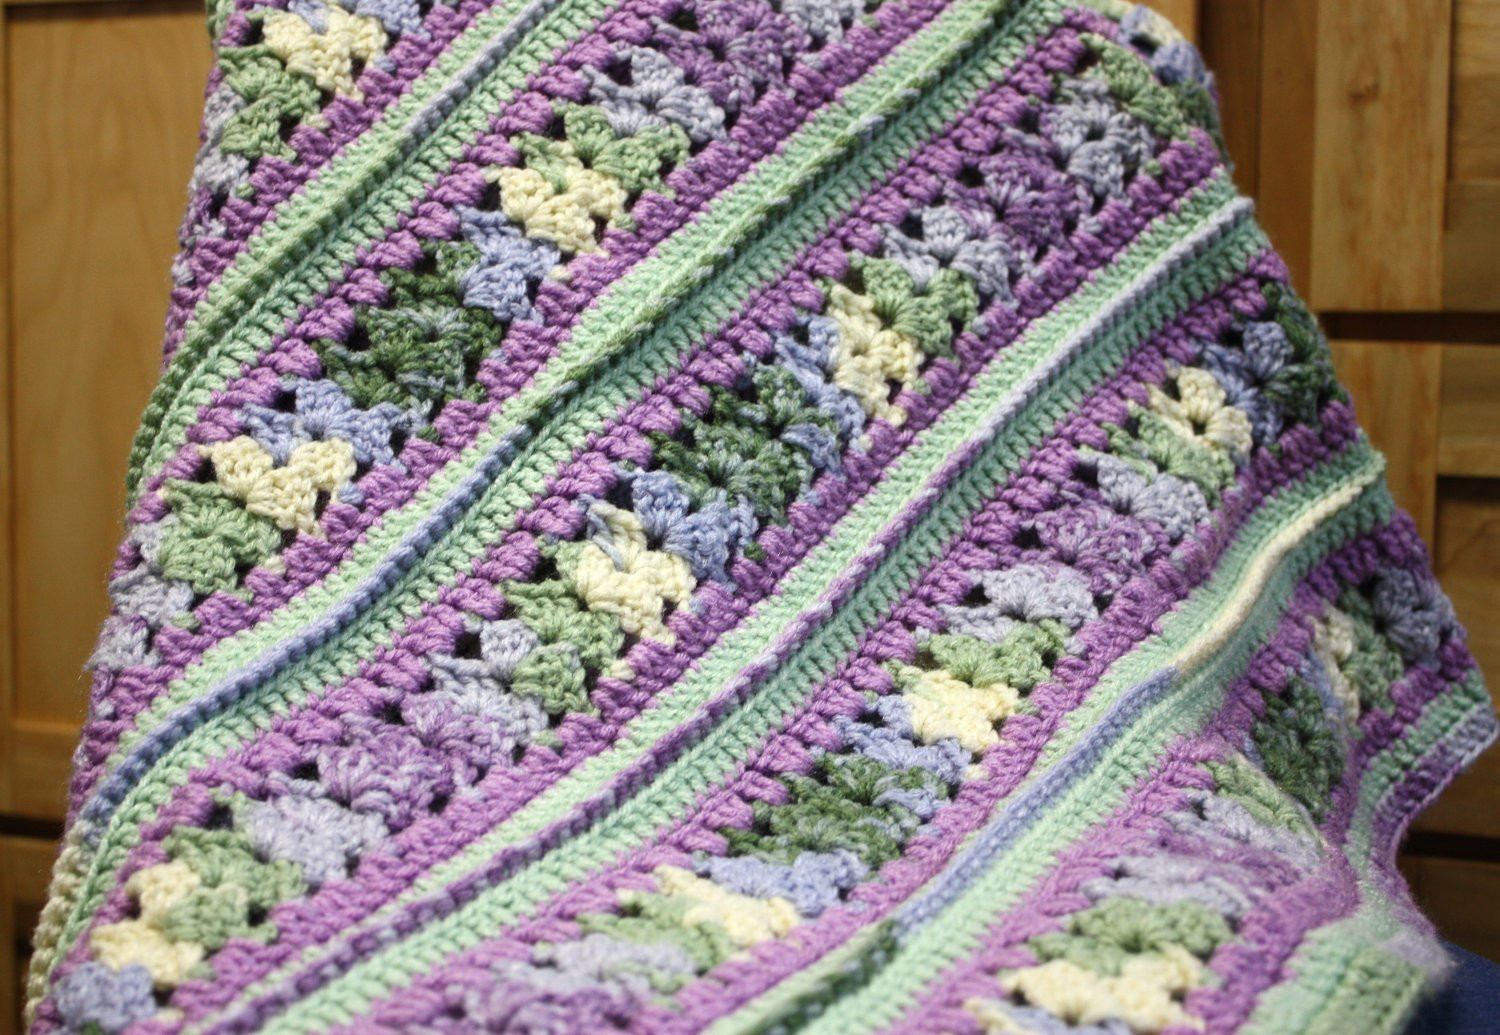 Crochet Afghan Patterns Mile A Minute Dancox for